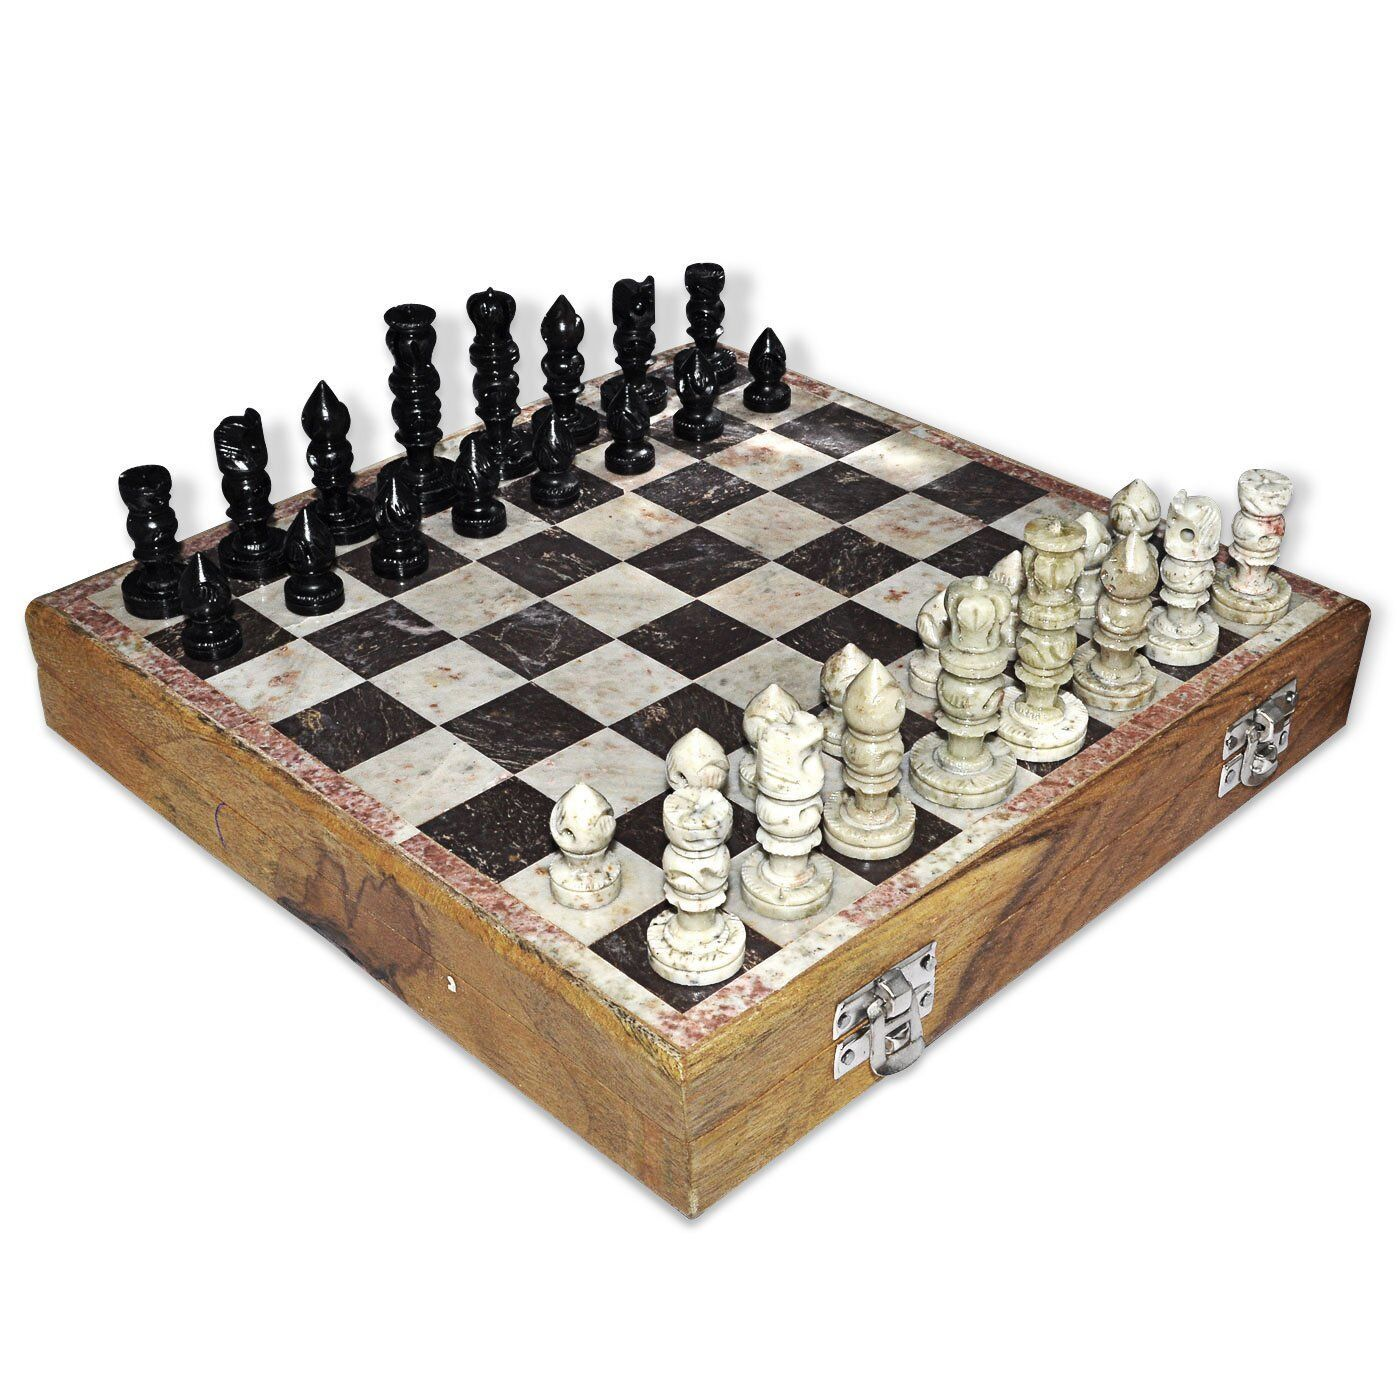 Indian handmade marble soap stone unique 32 chess pieces set 1 1 2 king size - Granite chess pieces ...